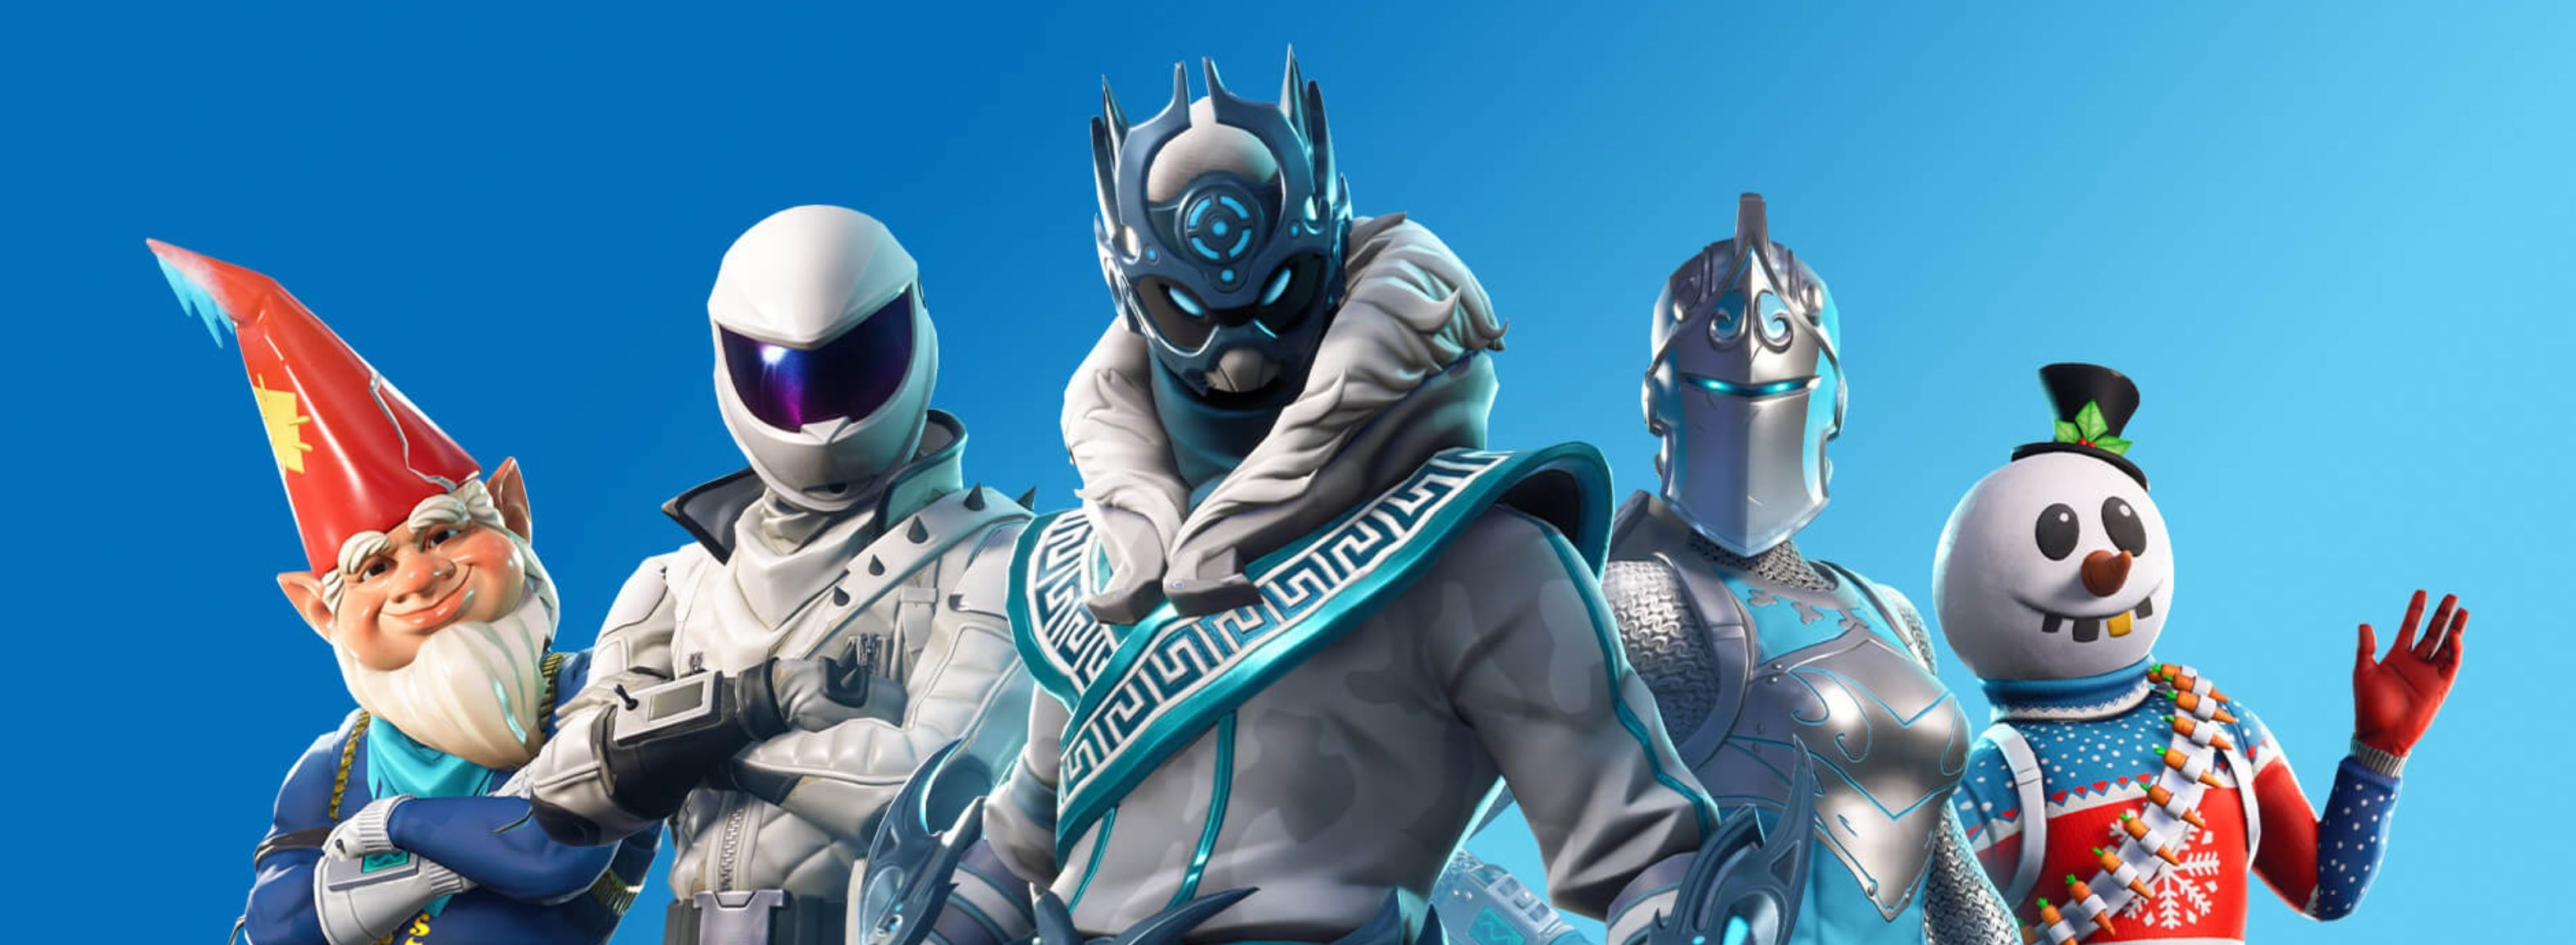 Fortnite Now Supports Split Screen Multiplayer On Xbox One And Ps4